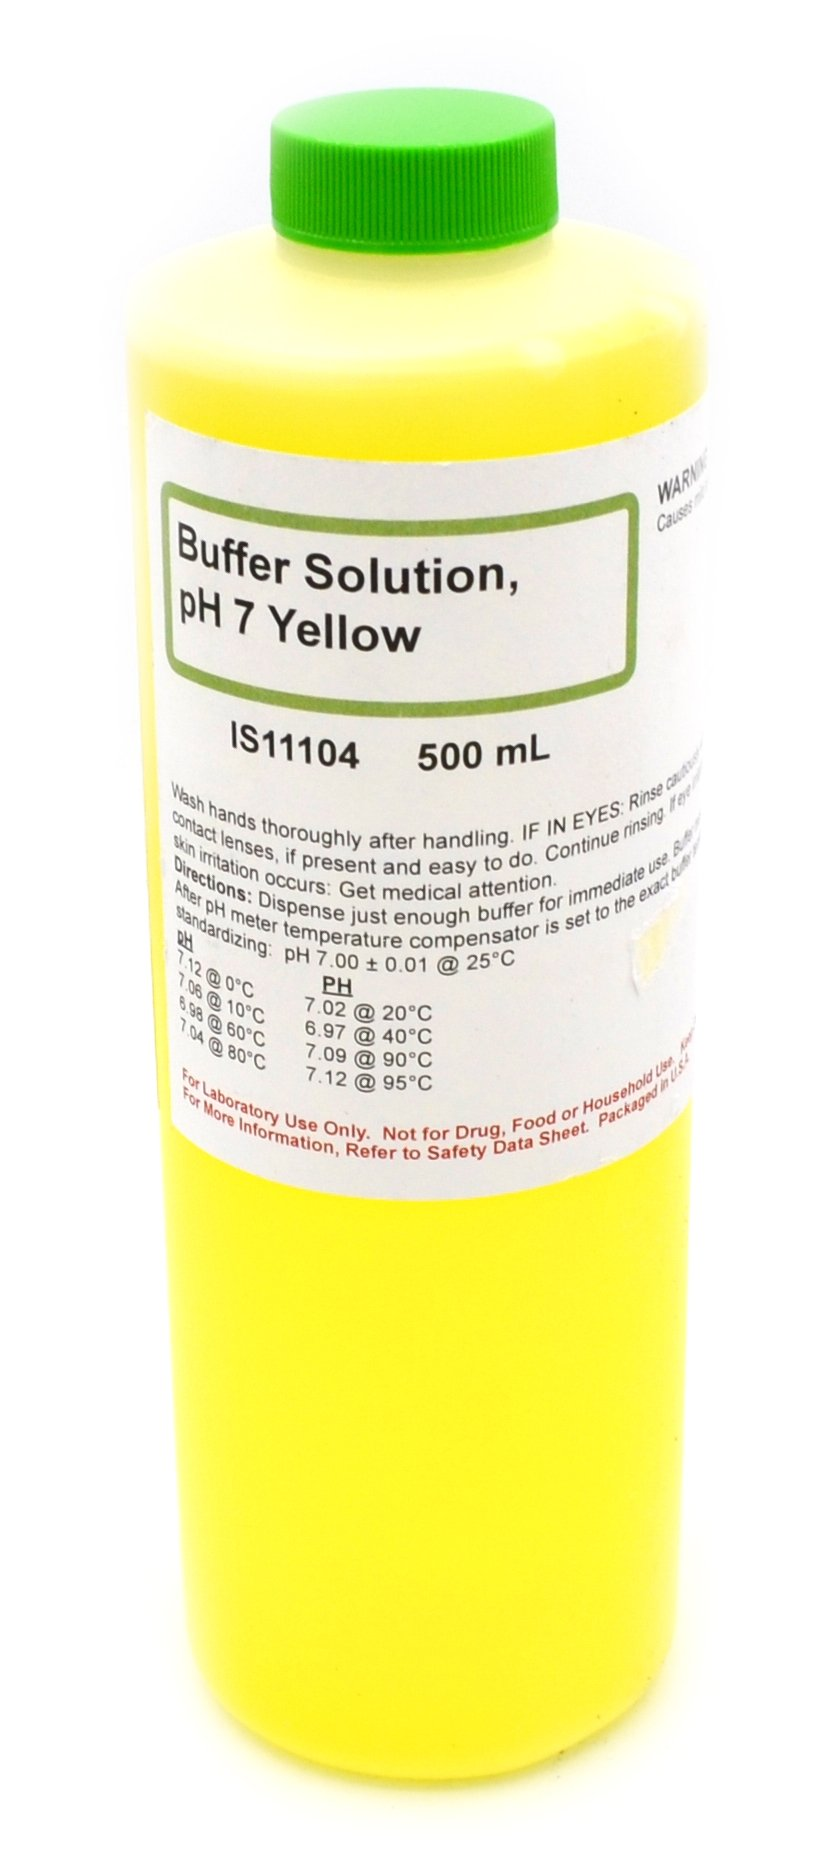 7.00 pH Standard Buffer Solution, Yellow, 500mL - The Curated Chemical Collection by Innovating Science